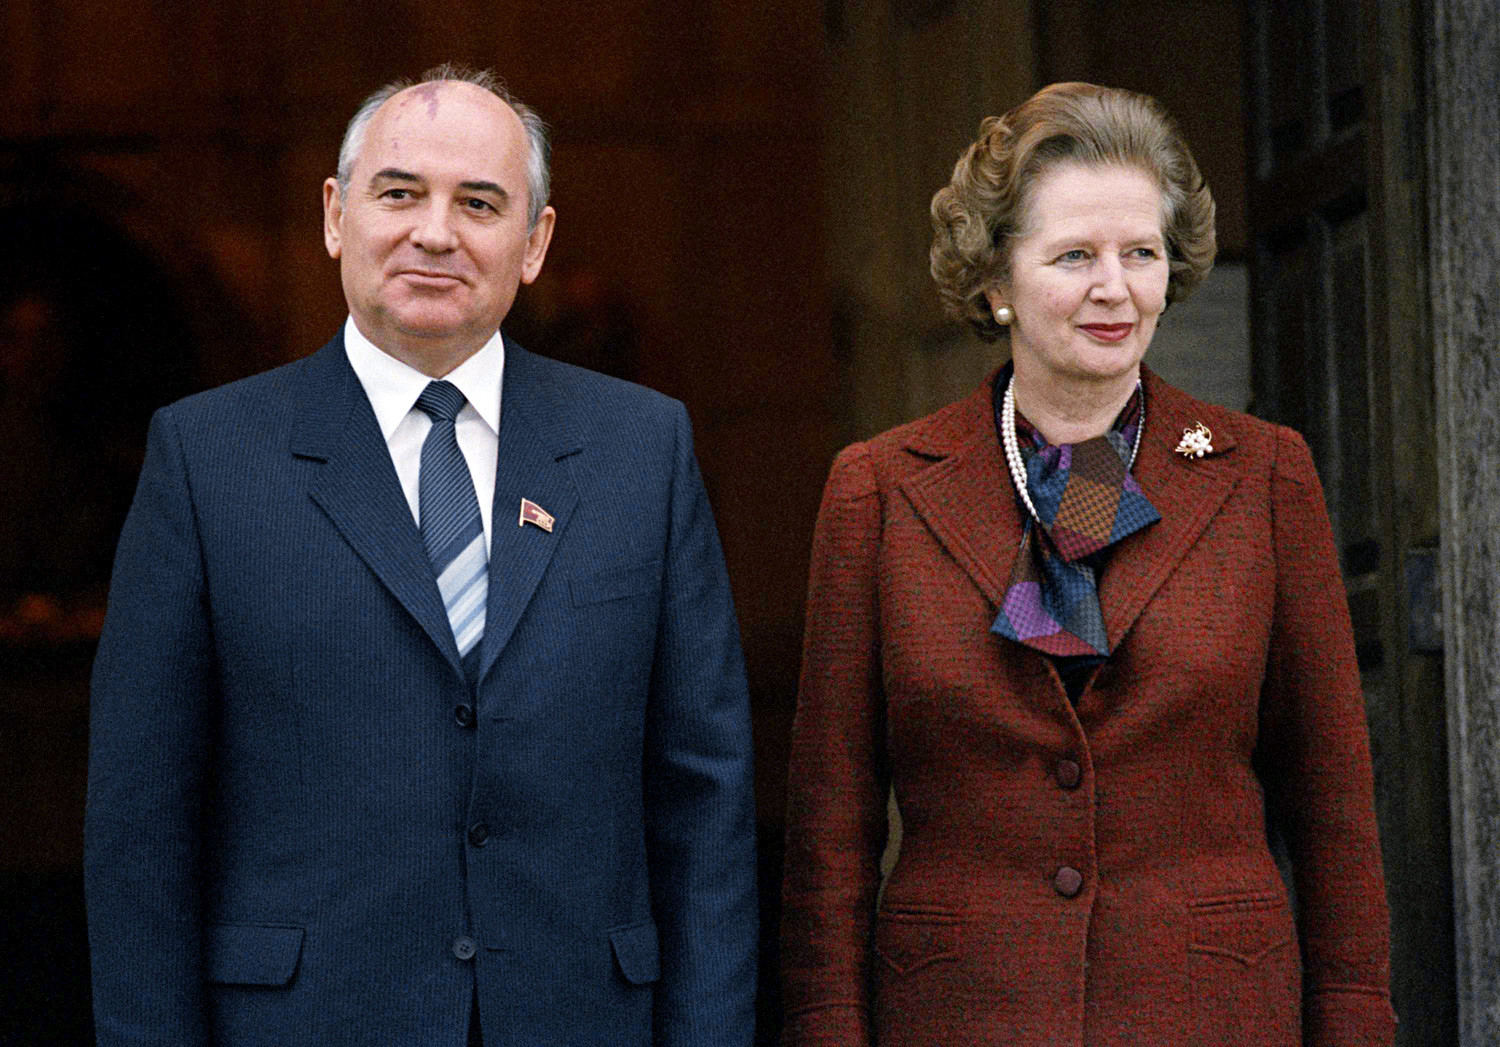 Gorbachev and Thatcher refused reciprocal claims on Tsarist-era debts